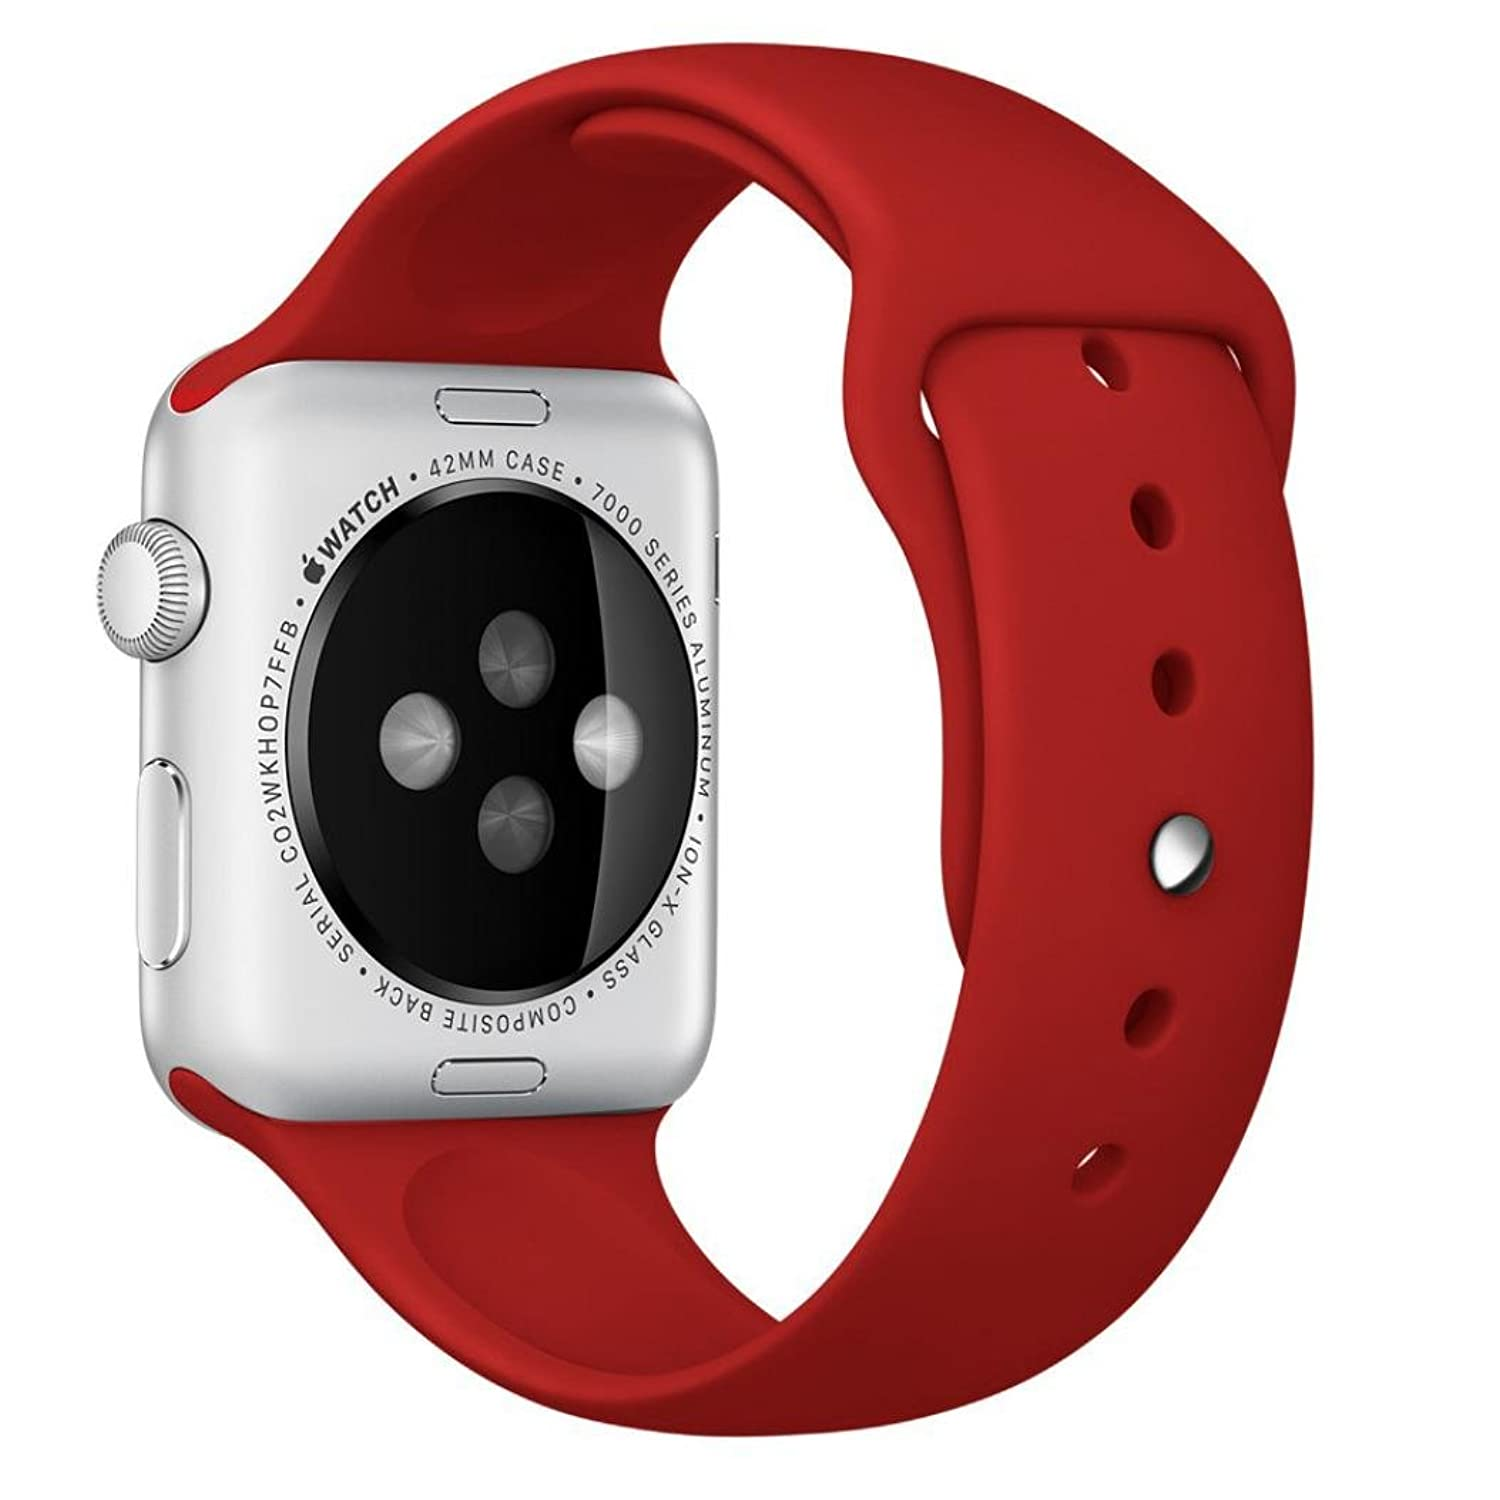 Apple Watch Band, Perman Sports Comfort Smooth Silicone Smart Watch Replacement Bracelet Strap Band Watchband for Apple Watch 38mm Red